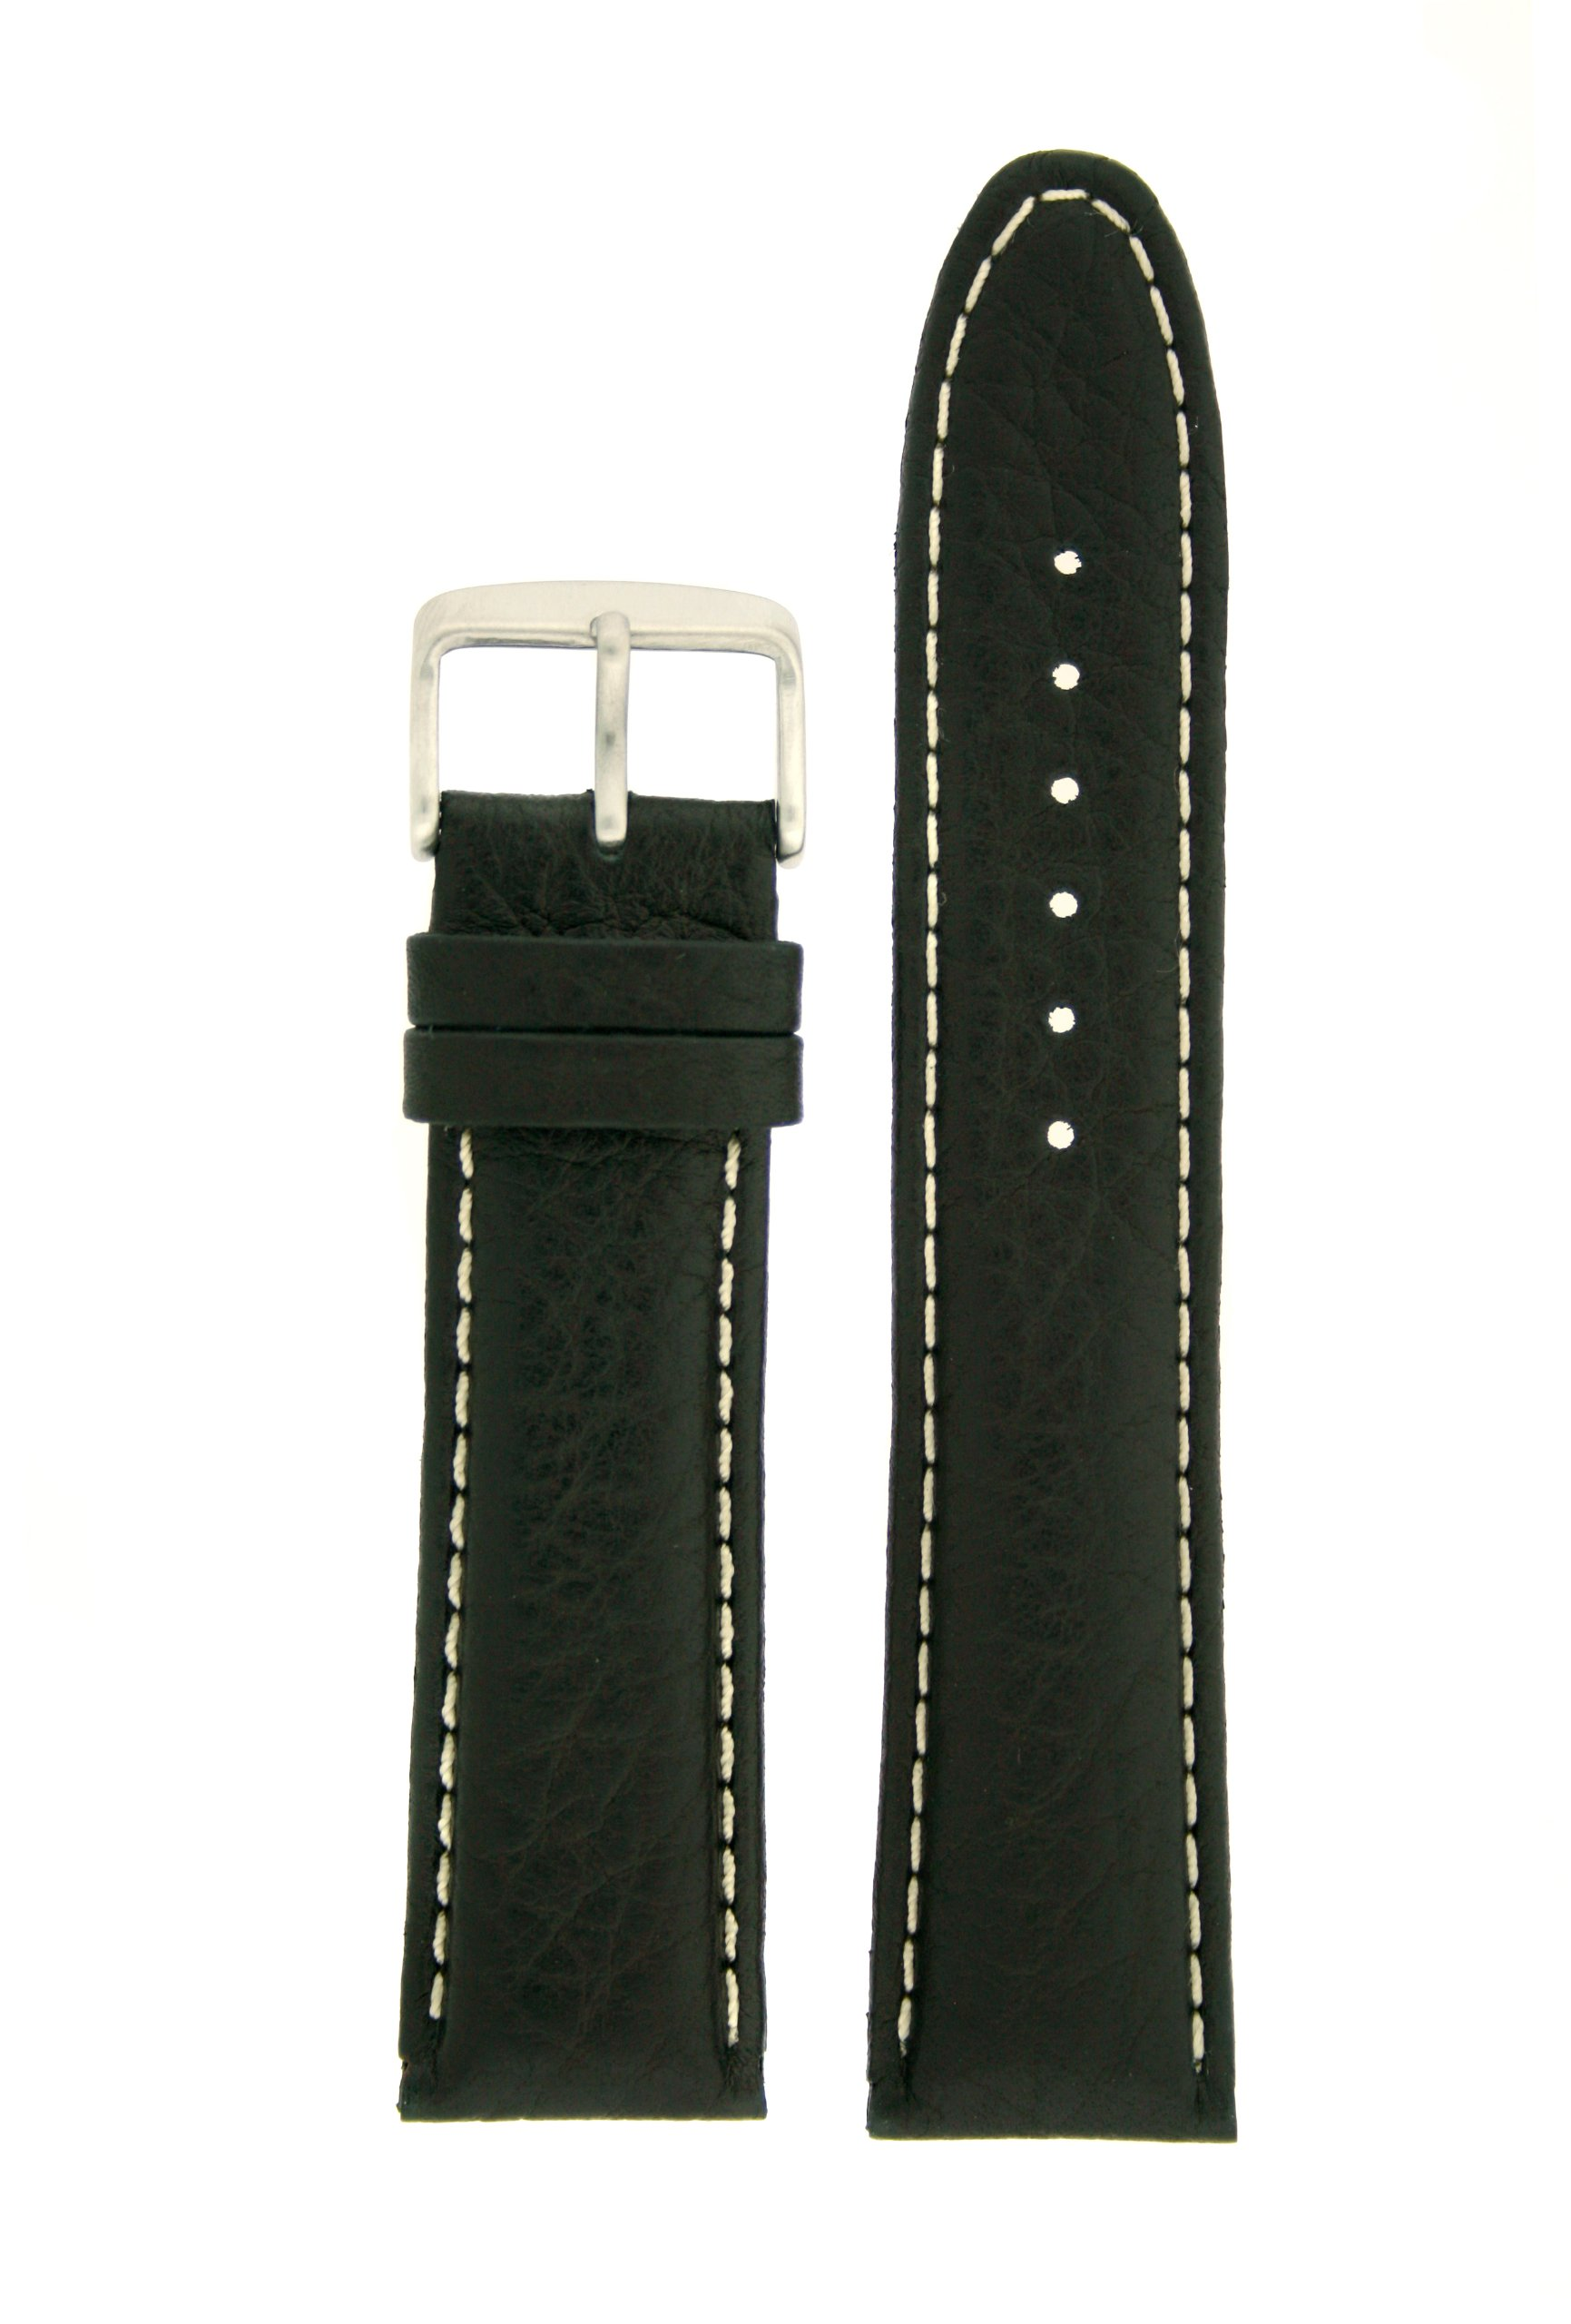 Extra Thick Padded Watch Band Genuine Leather Black 20 millimeters White Stitching Tech Swiss by Tech Swiss